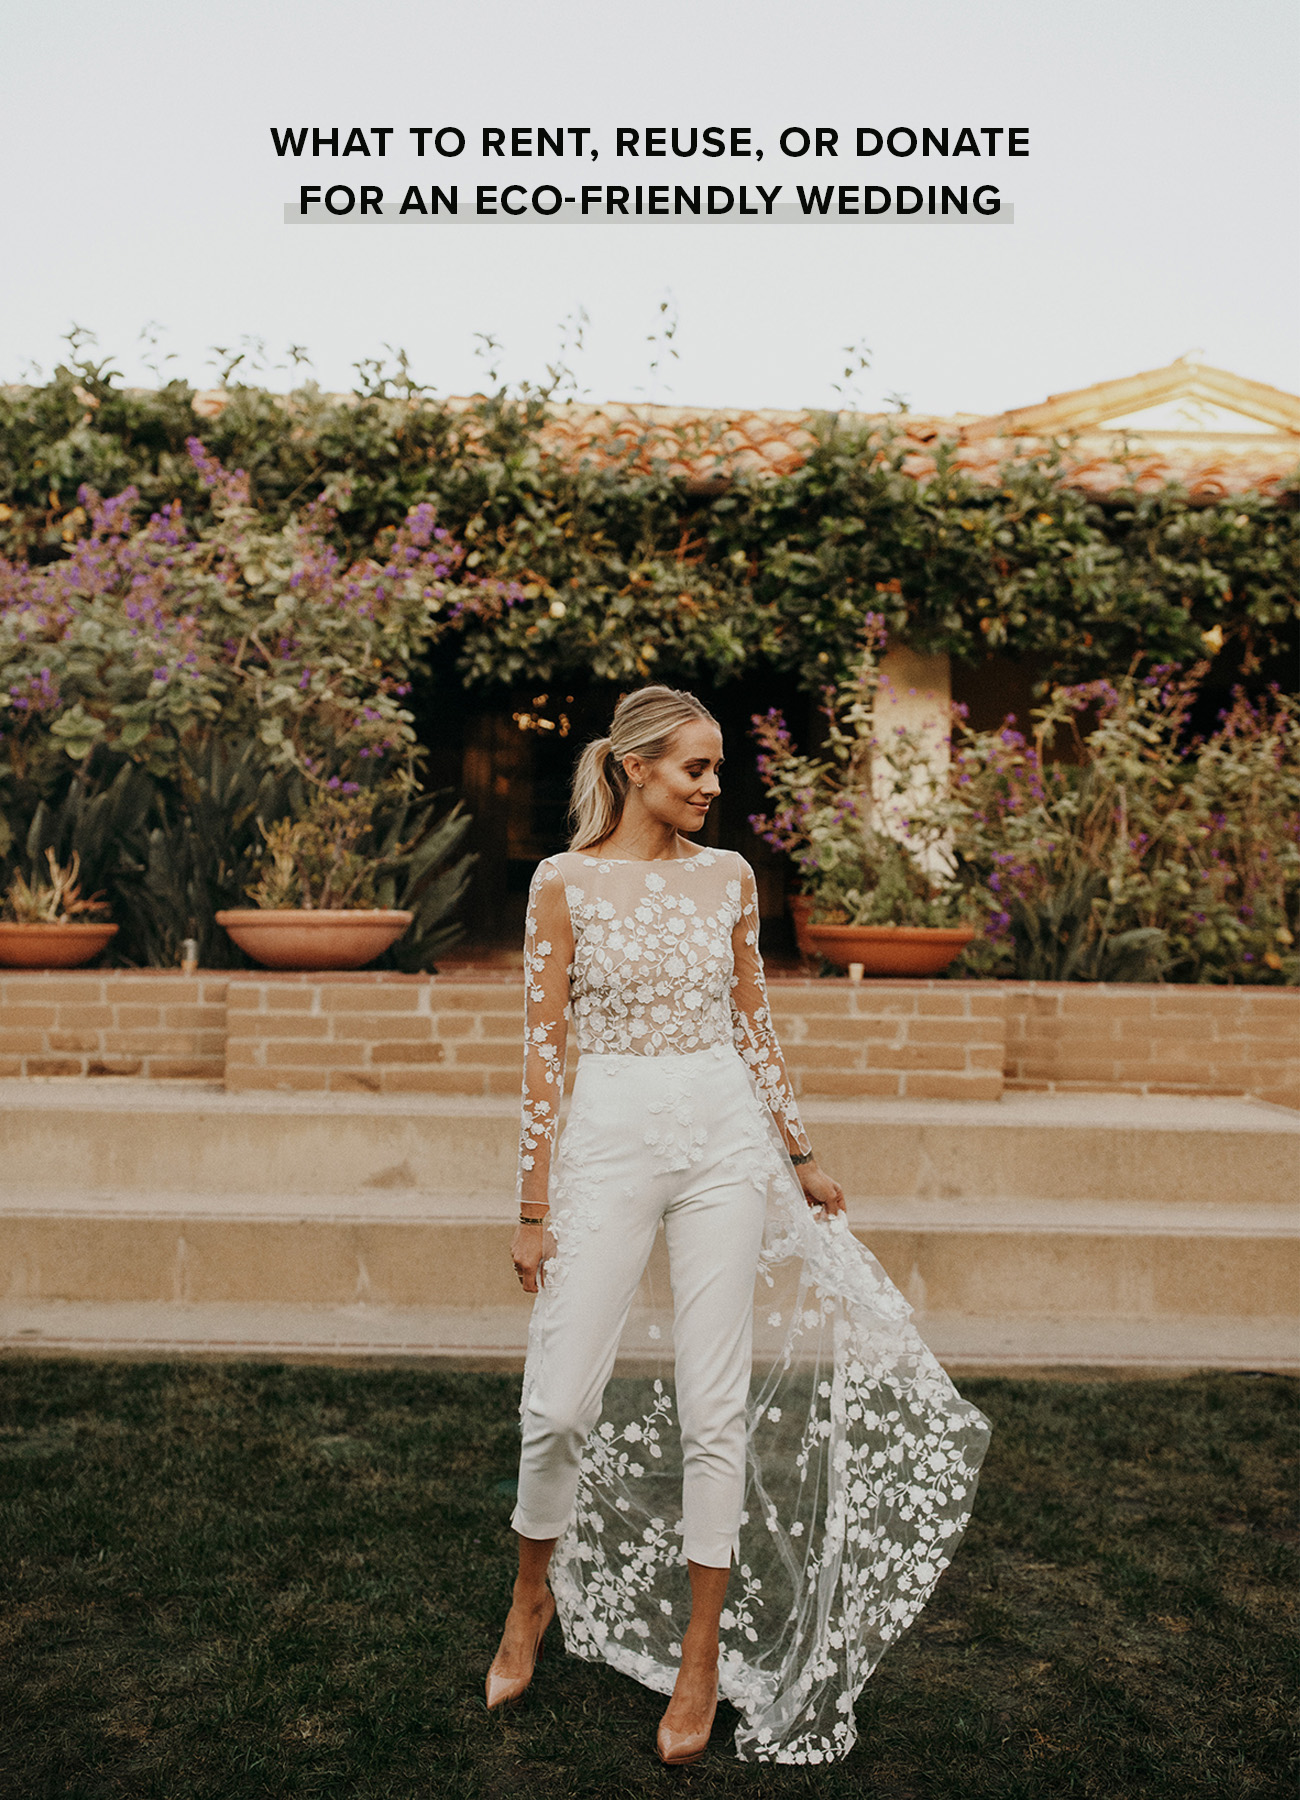 What to Rent, Reuse, or Donate for an Eco-Friendly Wedding